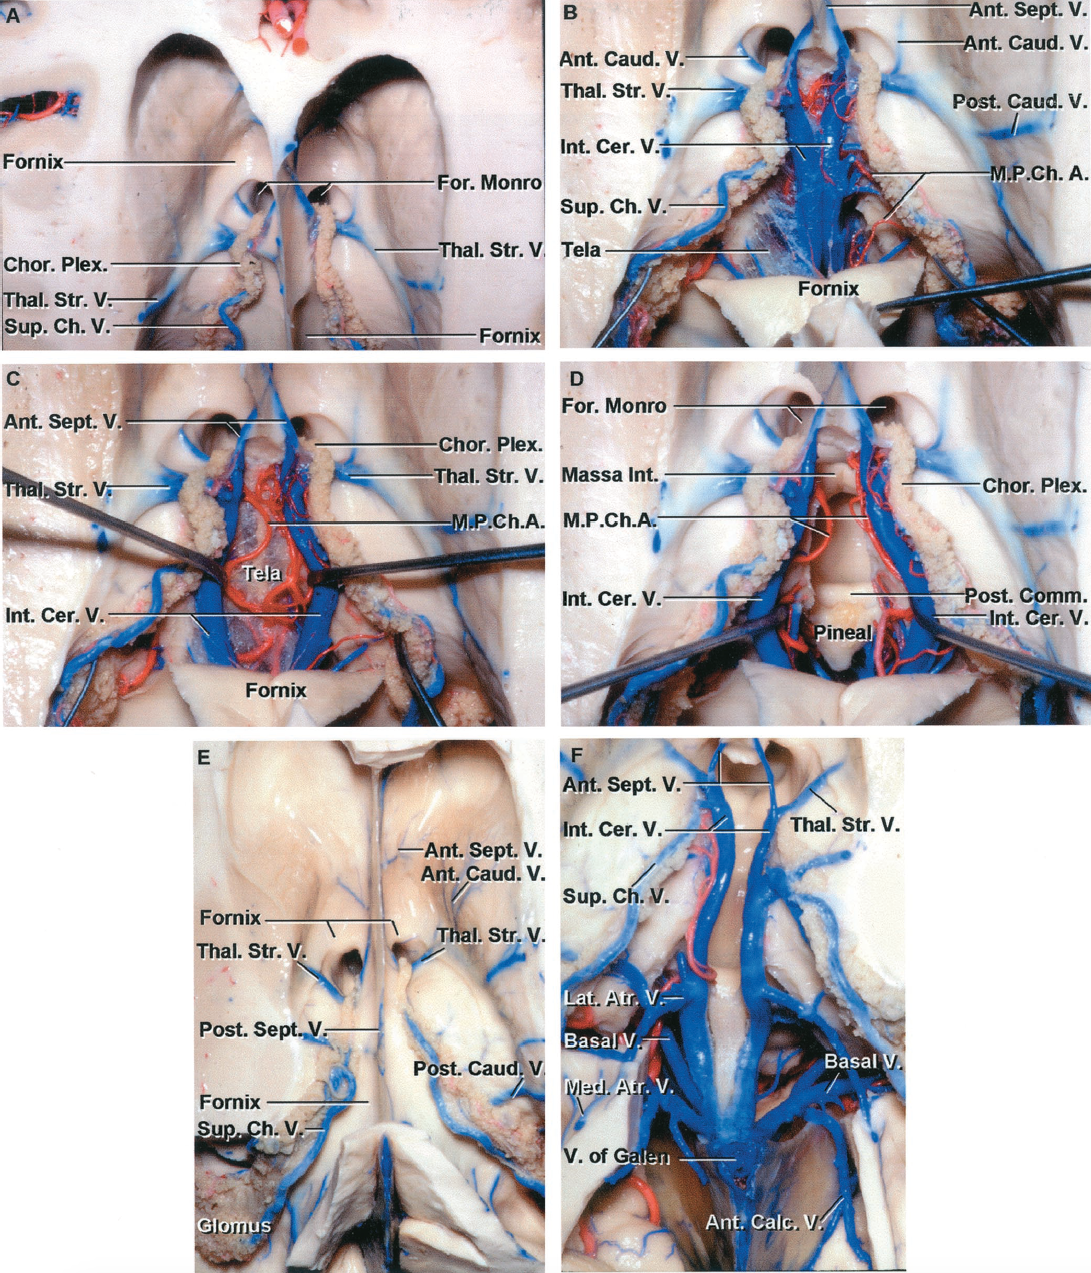 FIGURE 4.18. Internal cerebral veins in the roof of the third ventricle. A, superior view of the frontal horn and body. The thalamostriate and superior choroidal veins converge on the posterior edge of the foramen of Monro. The superior and anterior margin of the foramen of Monro is formed by the fornix. B, the fornix has been folded backward to expose the tela choroidea and the internal cerebral veins in the roof of the third ventricle. A thin layer of ependyma extends above and partially hides the thalamostriate veins coursing along the sulcus between the thalamus and caudate nucleus. The anterior caudate and anterior septal veins cross the lateral and medial wall of the frontal horn. The posterior caudate veins cross the lateral wall of the body of the ventricle. Only a small part of the upper layer of tela located between the fornix and internal cerebral veins remains. C, the internal cerebral veins have been separated to expose the branches of the medial posterior choroidal artery and the lower layer of tela choroidea that forms the floor of the velum interpositum in the roof of the third ventricle. The lower wall of the velum interpositum, in which the internal cerebral veins and medial posterior choroidal arteries course, is formed by the layer of tela attached along the medial side of the thalamus to the striae medullaris thalami. D, the lower layer of tela has been opened and the internal cerebral veins and the medial posterior choroidal arteries have been retracted to expose the posterior commissure, pineal gland, and massa intermedia. E, another hemisphere. The upper part of the hemisphere has been removed to expose the frontal horn, body and atrium of the lateral ventricle. The choroid plexus is attached along the choroidal fissure. The anterior and posterior caudate veins cross the lateral wall and the anterior and posterior septal veins cross the medial wall of the frontal horn and body of the lateral ventricle. The superior choroidal veins course along the choroid plexus. The thalamostriate veins pass through the posterior margin of the foramen of Monro. The choroid plexus in the atrium expands to a large tuft called the glomus. F, the body of the fornix has been removed to expose the internal cerebral veins coursing in the roof the third ventricle. The medial and lateral atrial and anterior calcarine veins join the posterior end of the internal cerebral veins. The basal veins are exposed below and lateral to the internal cerebral veins. Ant., anterior; Atr., atrial; Calc., calcarine; Caud., caudate; Cer., cerebral; Ch., choroidal; Chor., choroid; Comm., communicating; For., foramen; Int., intermedia, internal; Lat., lateral; Med., medial; Plex., plexus; M.P.Ch.A., medial posterior choroidal artery; Post., posterior; Sept., septal; Sup., superior; Thal.Str., thalamostriate; V., vein.